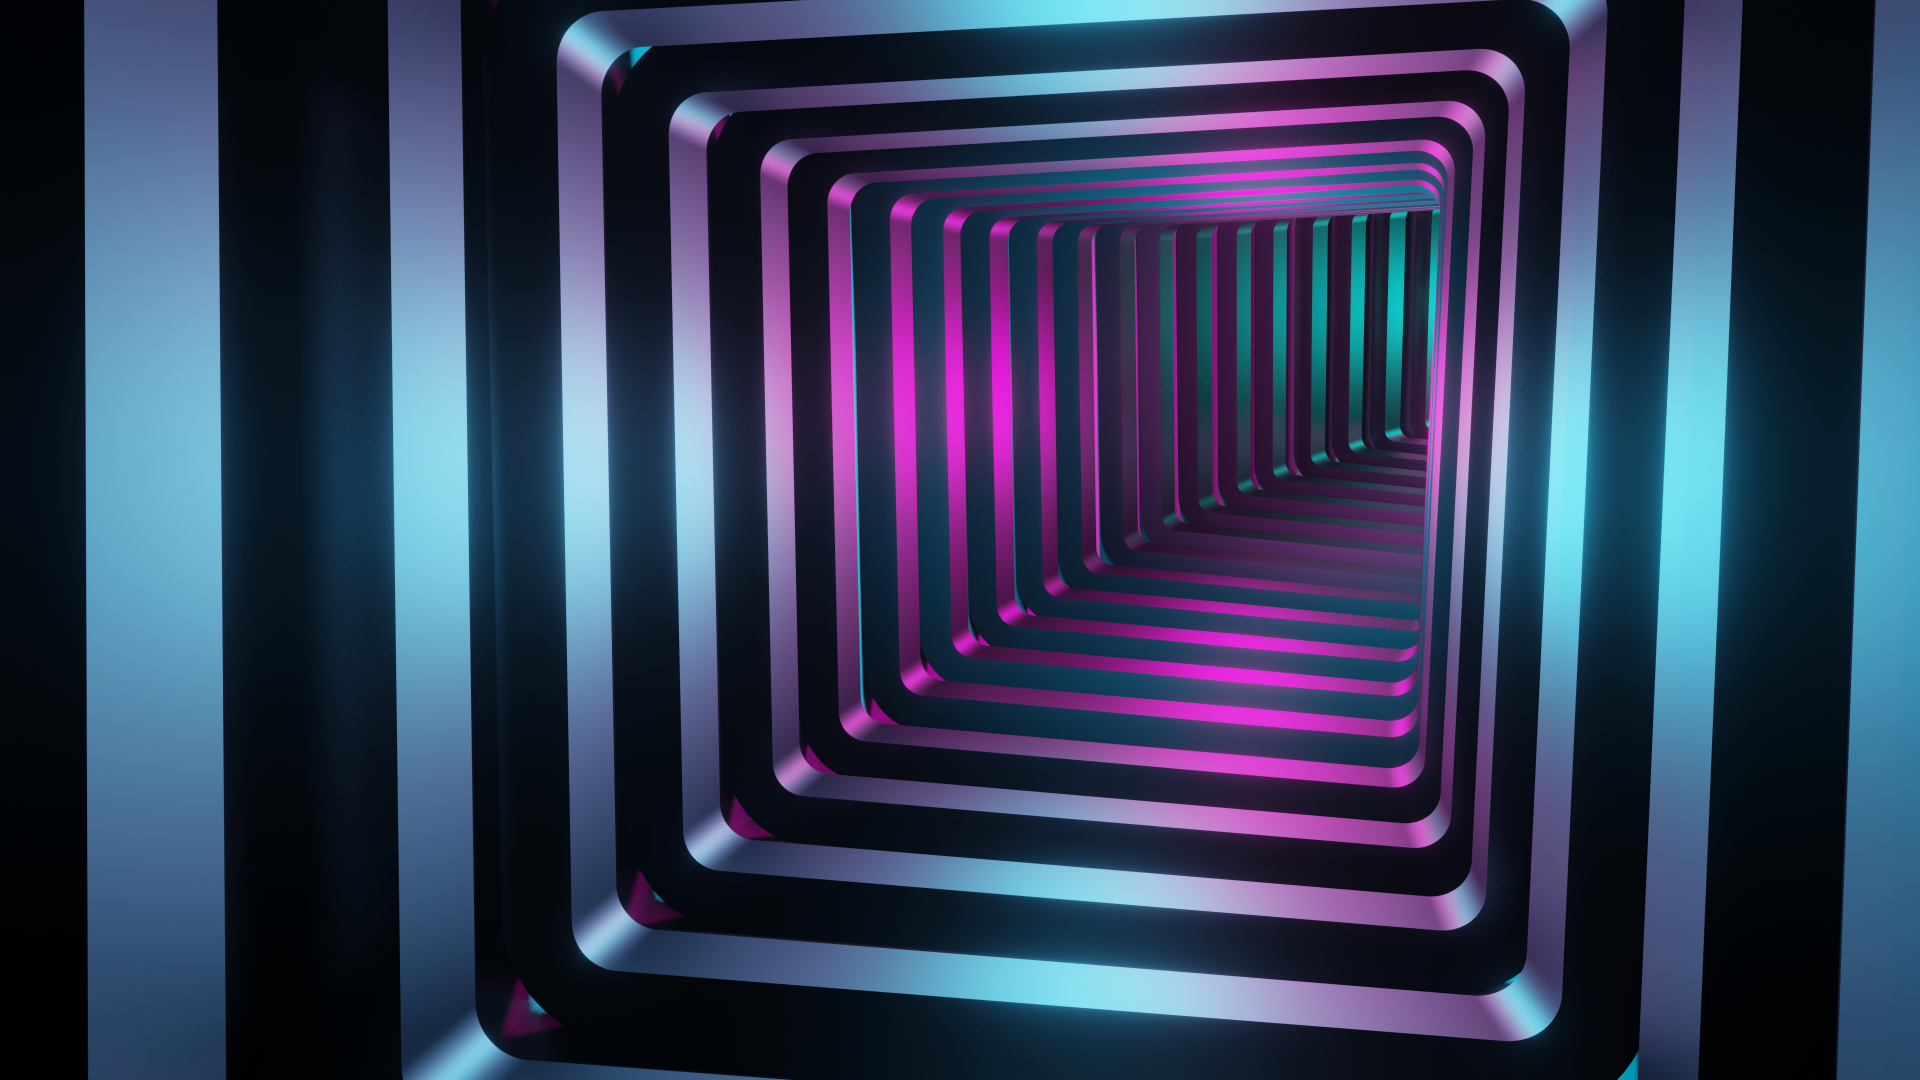 1920x1080 Square 3d Tunnel 1080p Laptop Full Hd Wallpaper Hd Abstract 4k Wallpapers Images Photos And Background Wallpapers Den